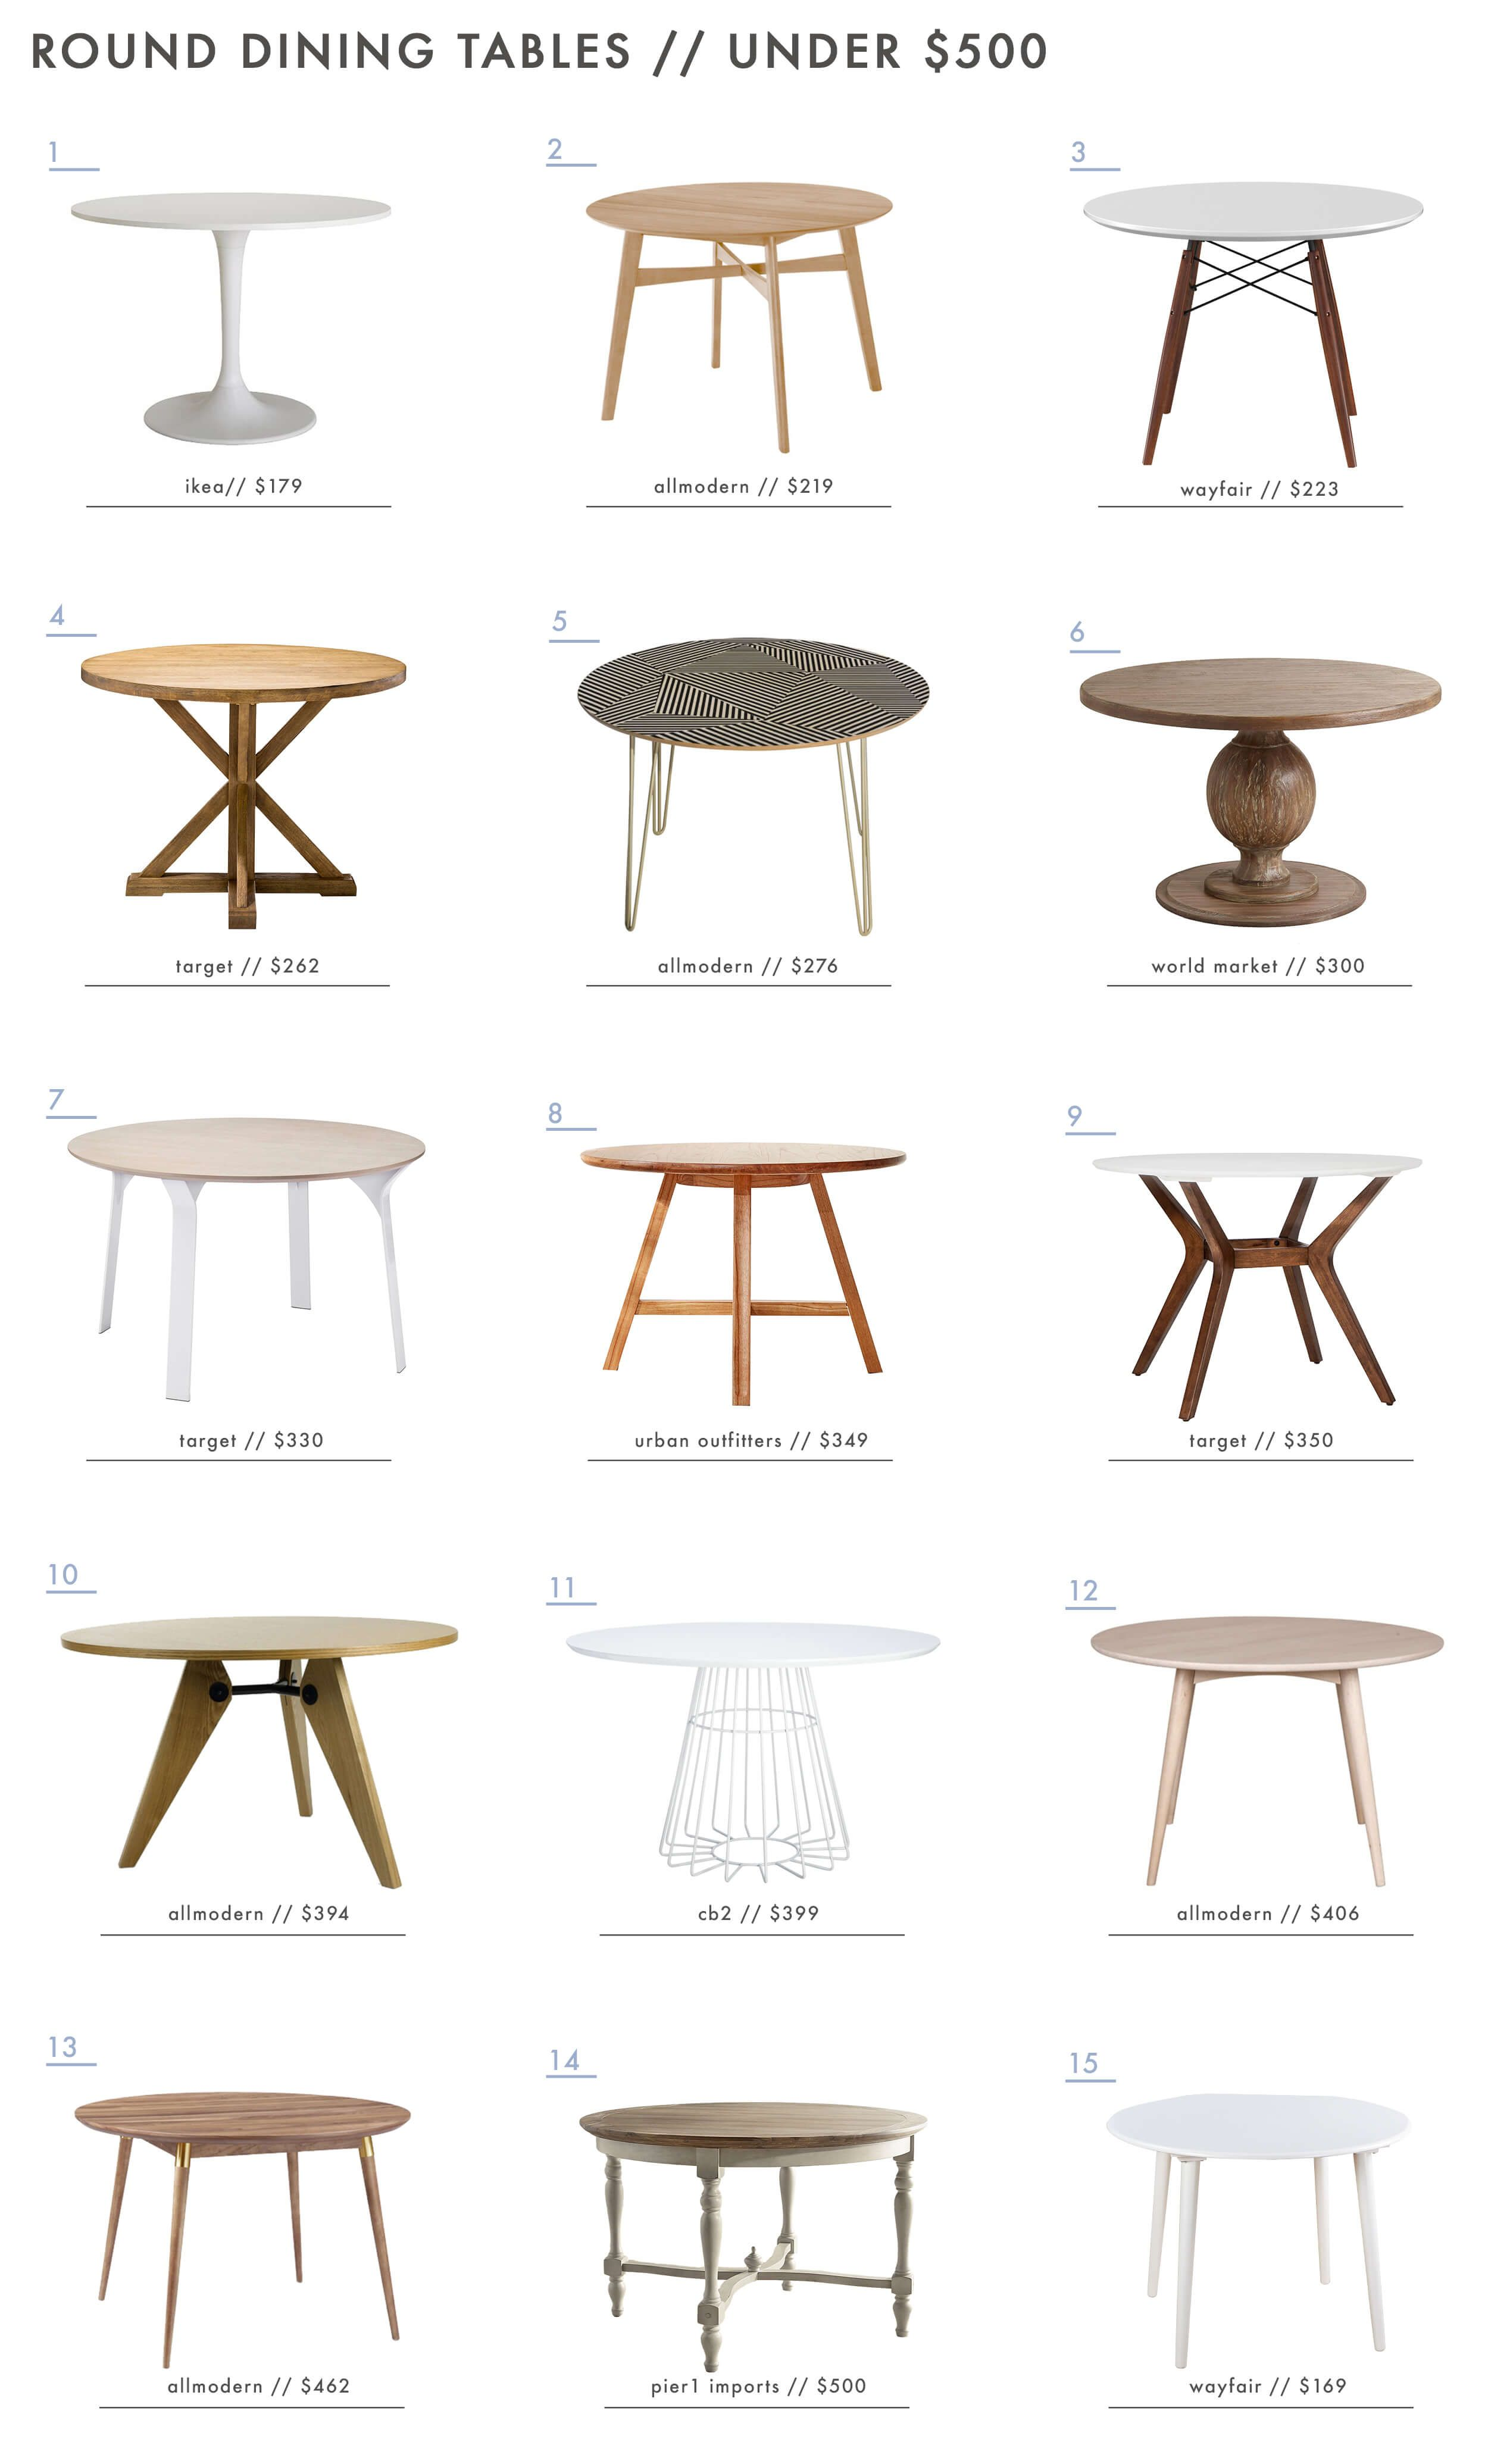 Home Goods Kitchen Table And Chairs Chair Covers For Wedding Rental A Roundup Of 126 Dining Tables Every Style Space